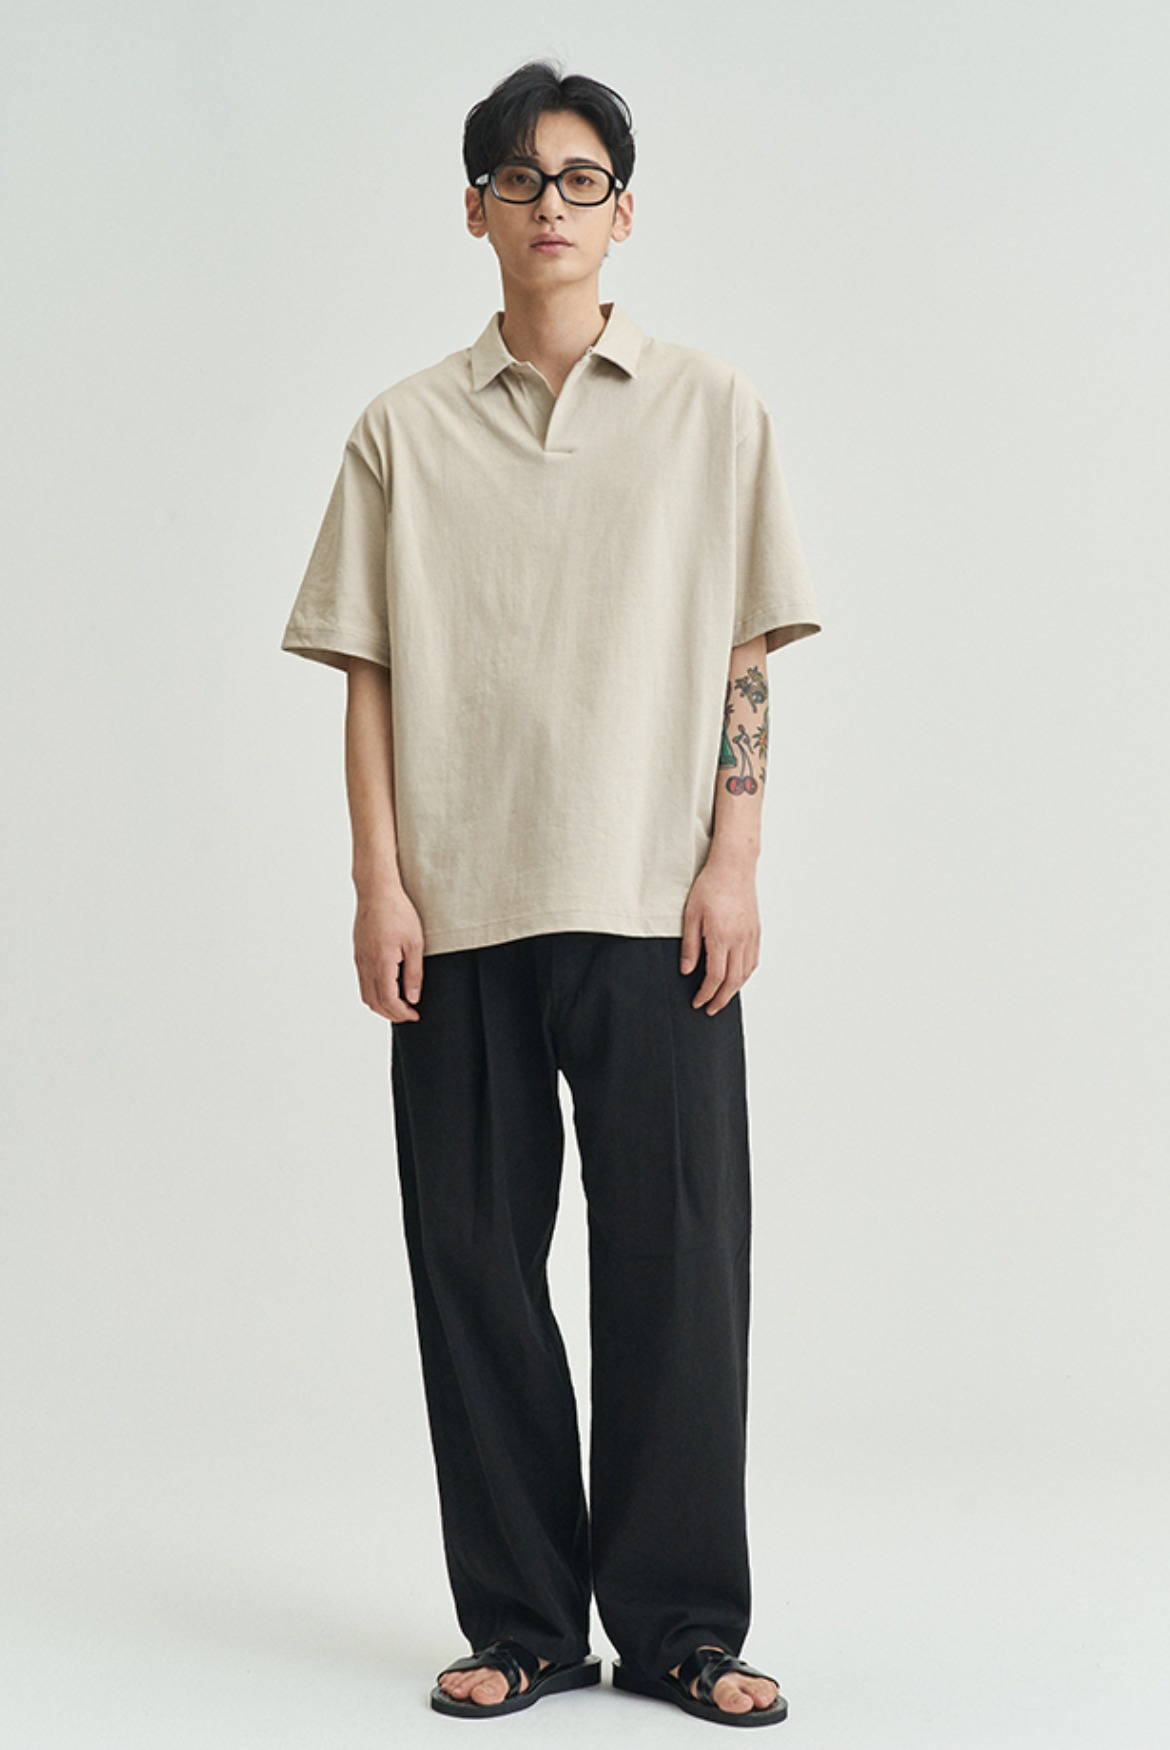 Linen Deep One Tuck Pants [Black]